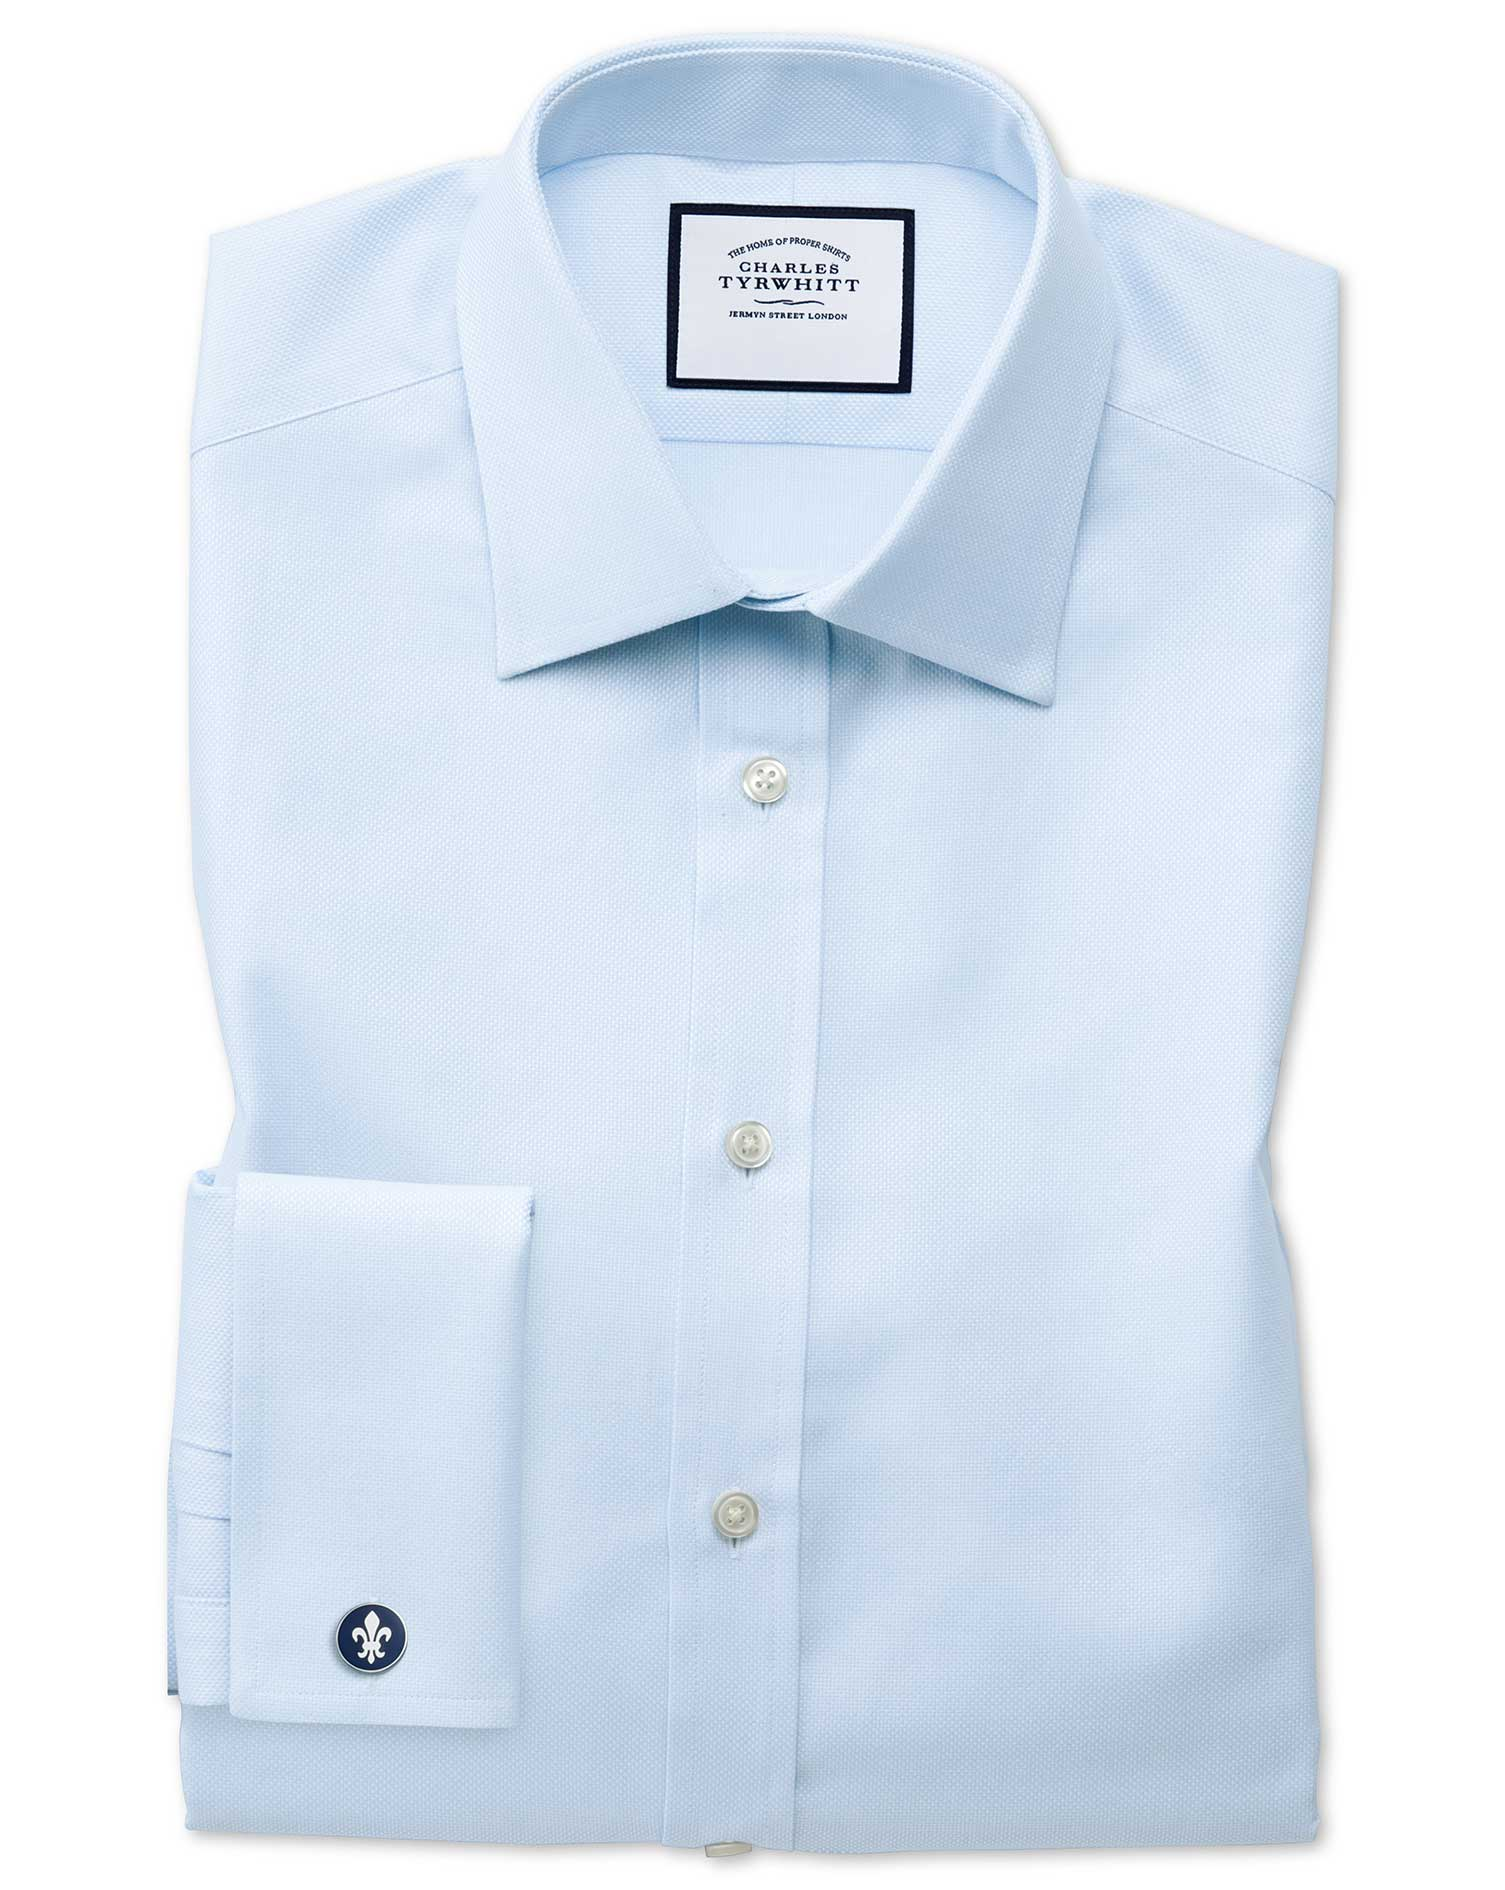 Slim Fit Egyptian Cotton Royal Oxford Sky Blue Formal Shirt Double Cuff Size 17/36 by Charles Tyrwhi